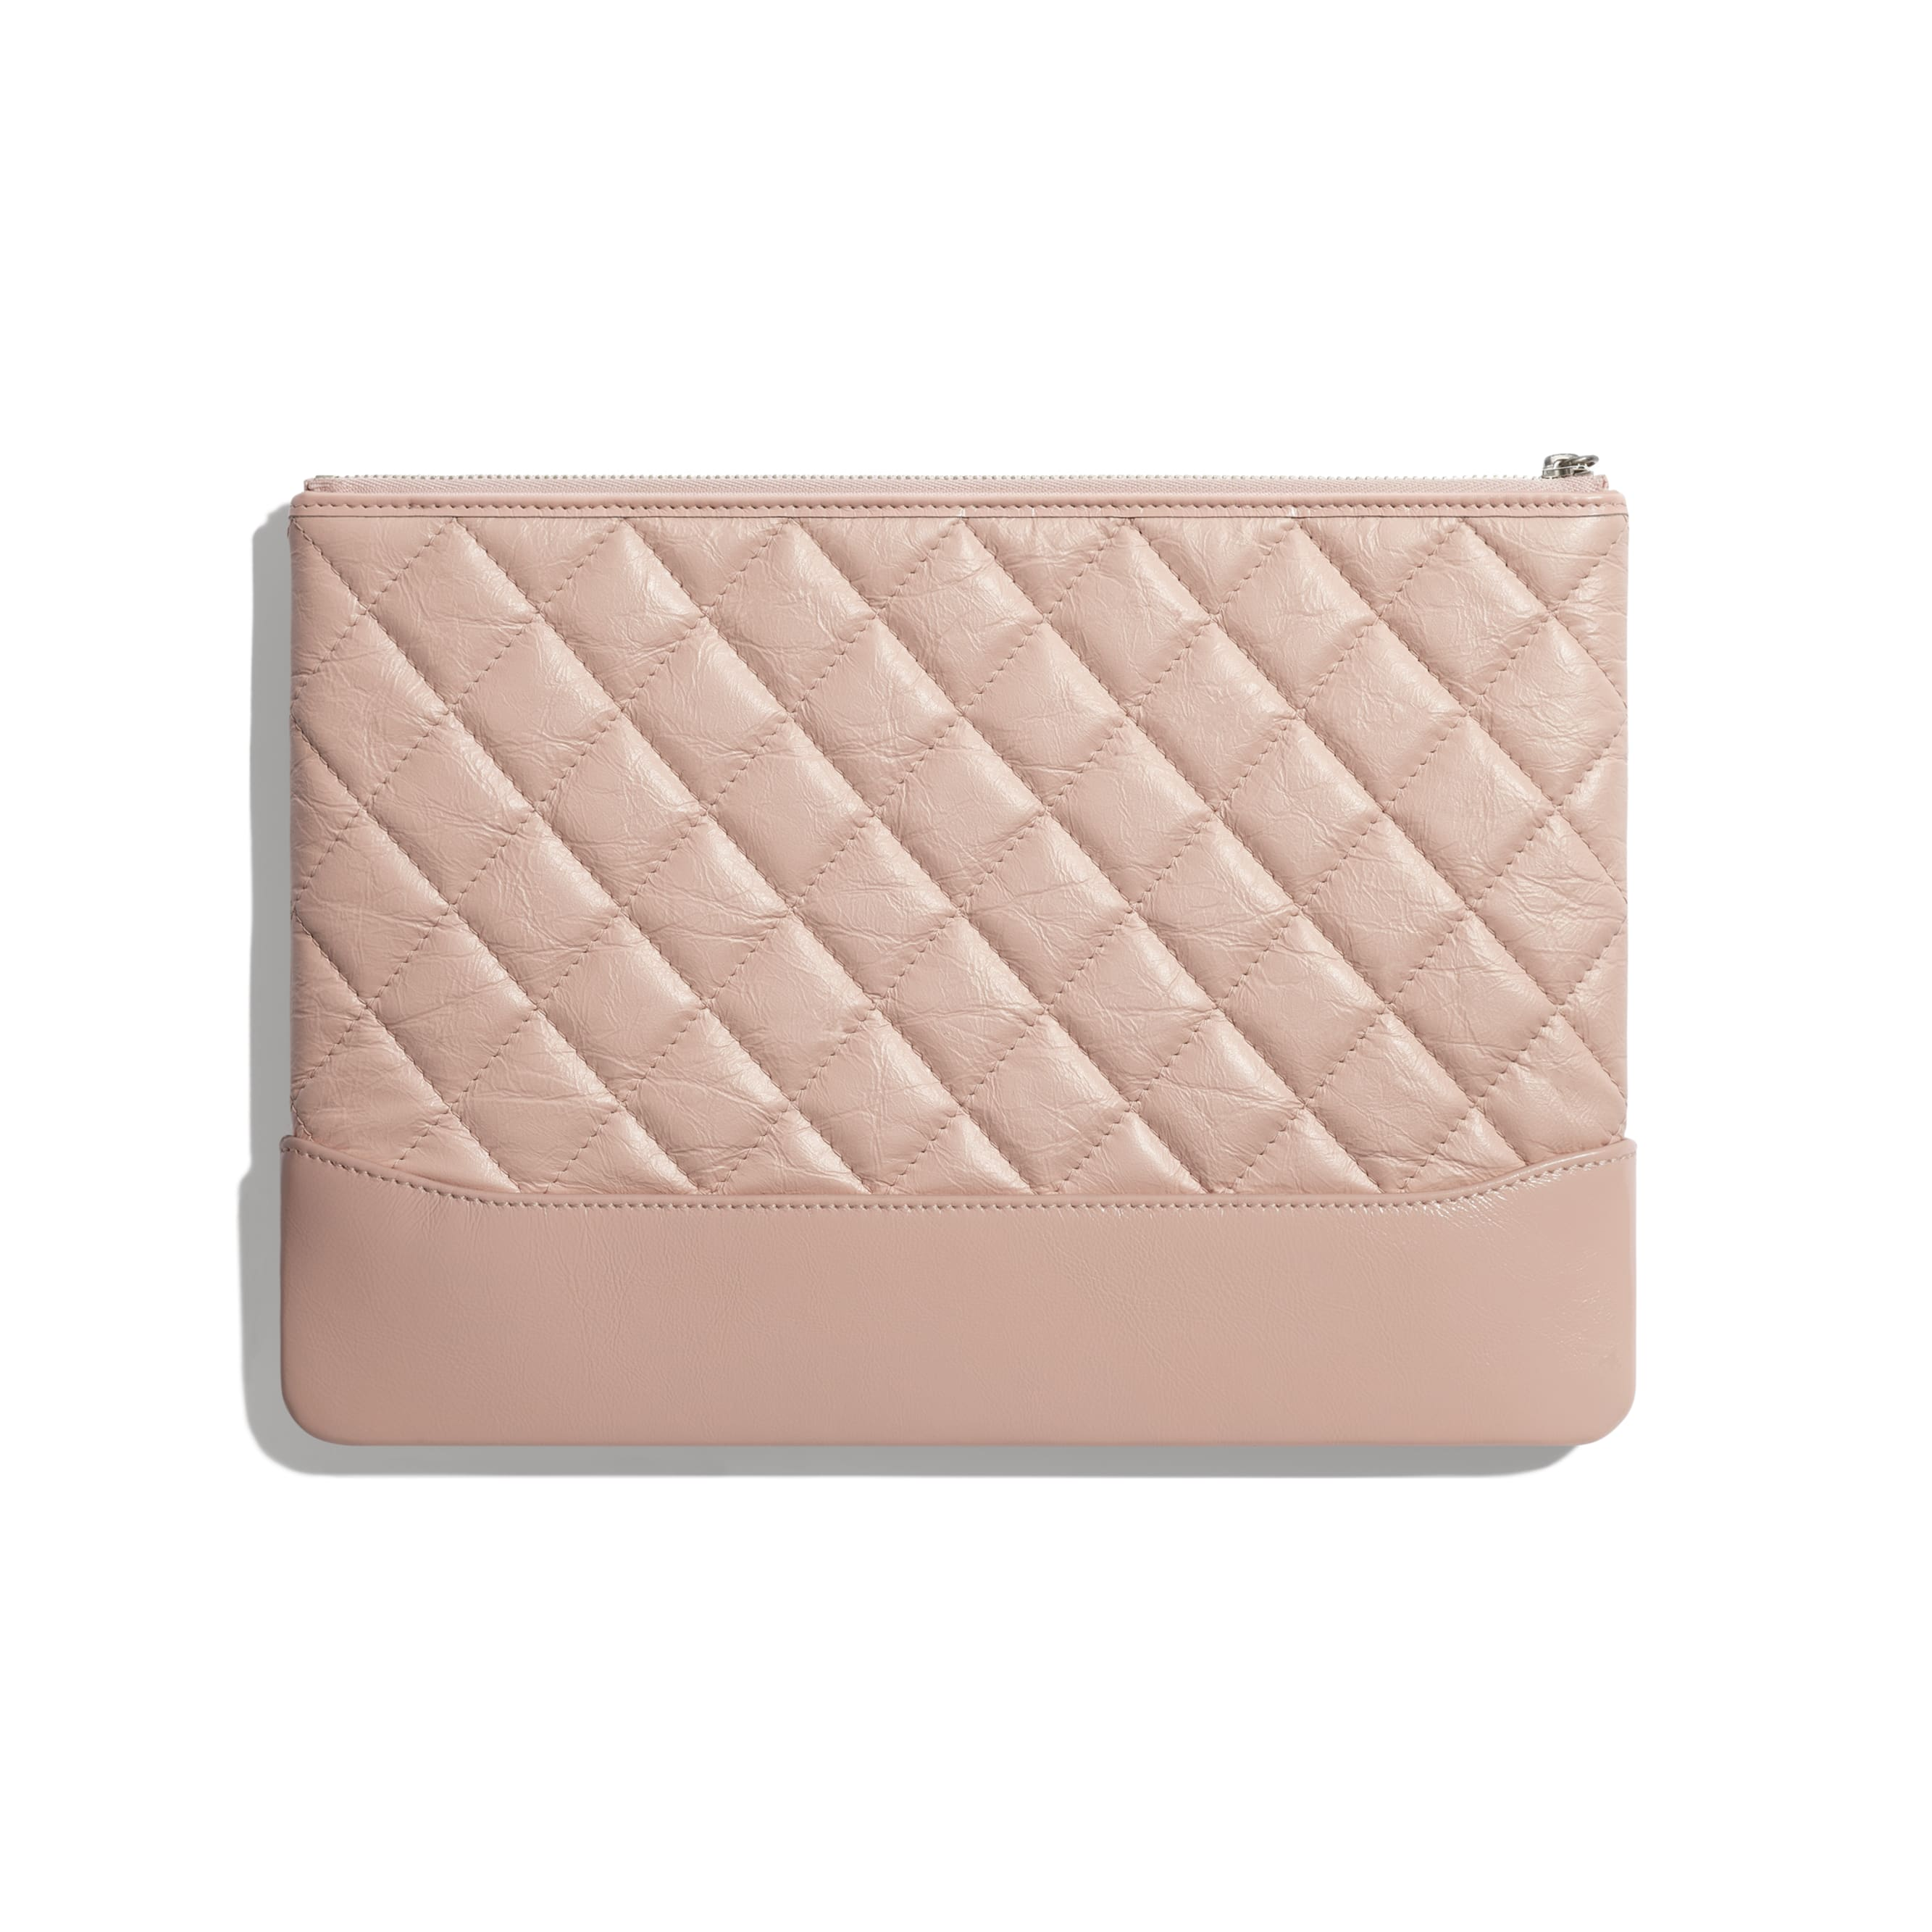 Pouch - Light Pink - Aged Calfskin, Smooth Calfskin & Gold-Tone Metal - CHANEL - Alternative view - see standard sized version